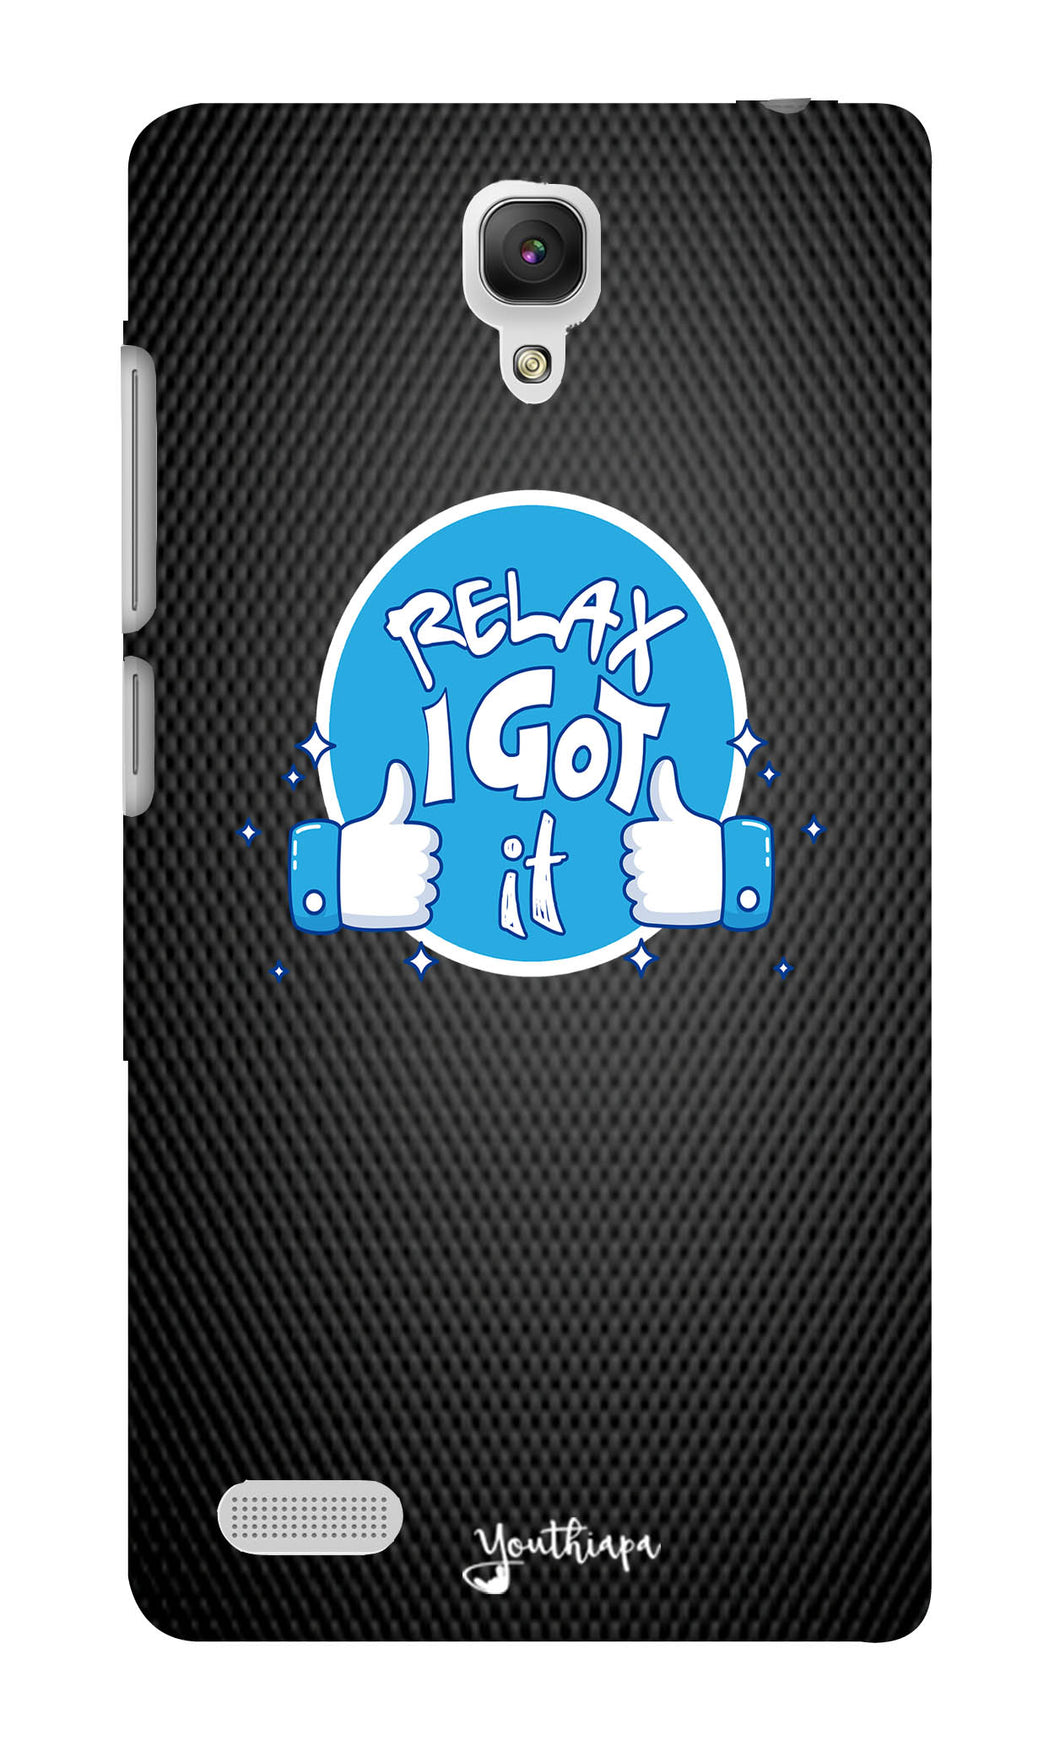 Relax Editon for Xiaomi Redmi Note 4g